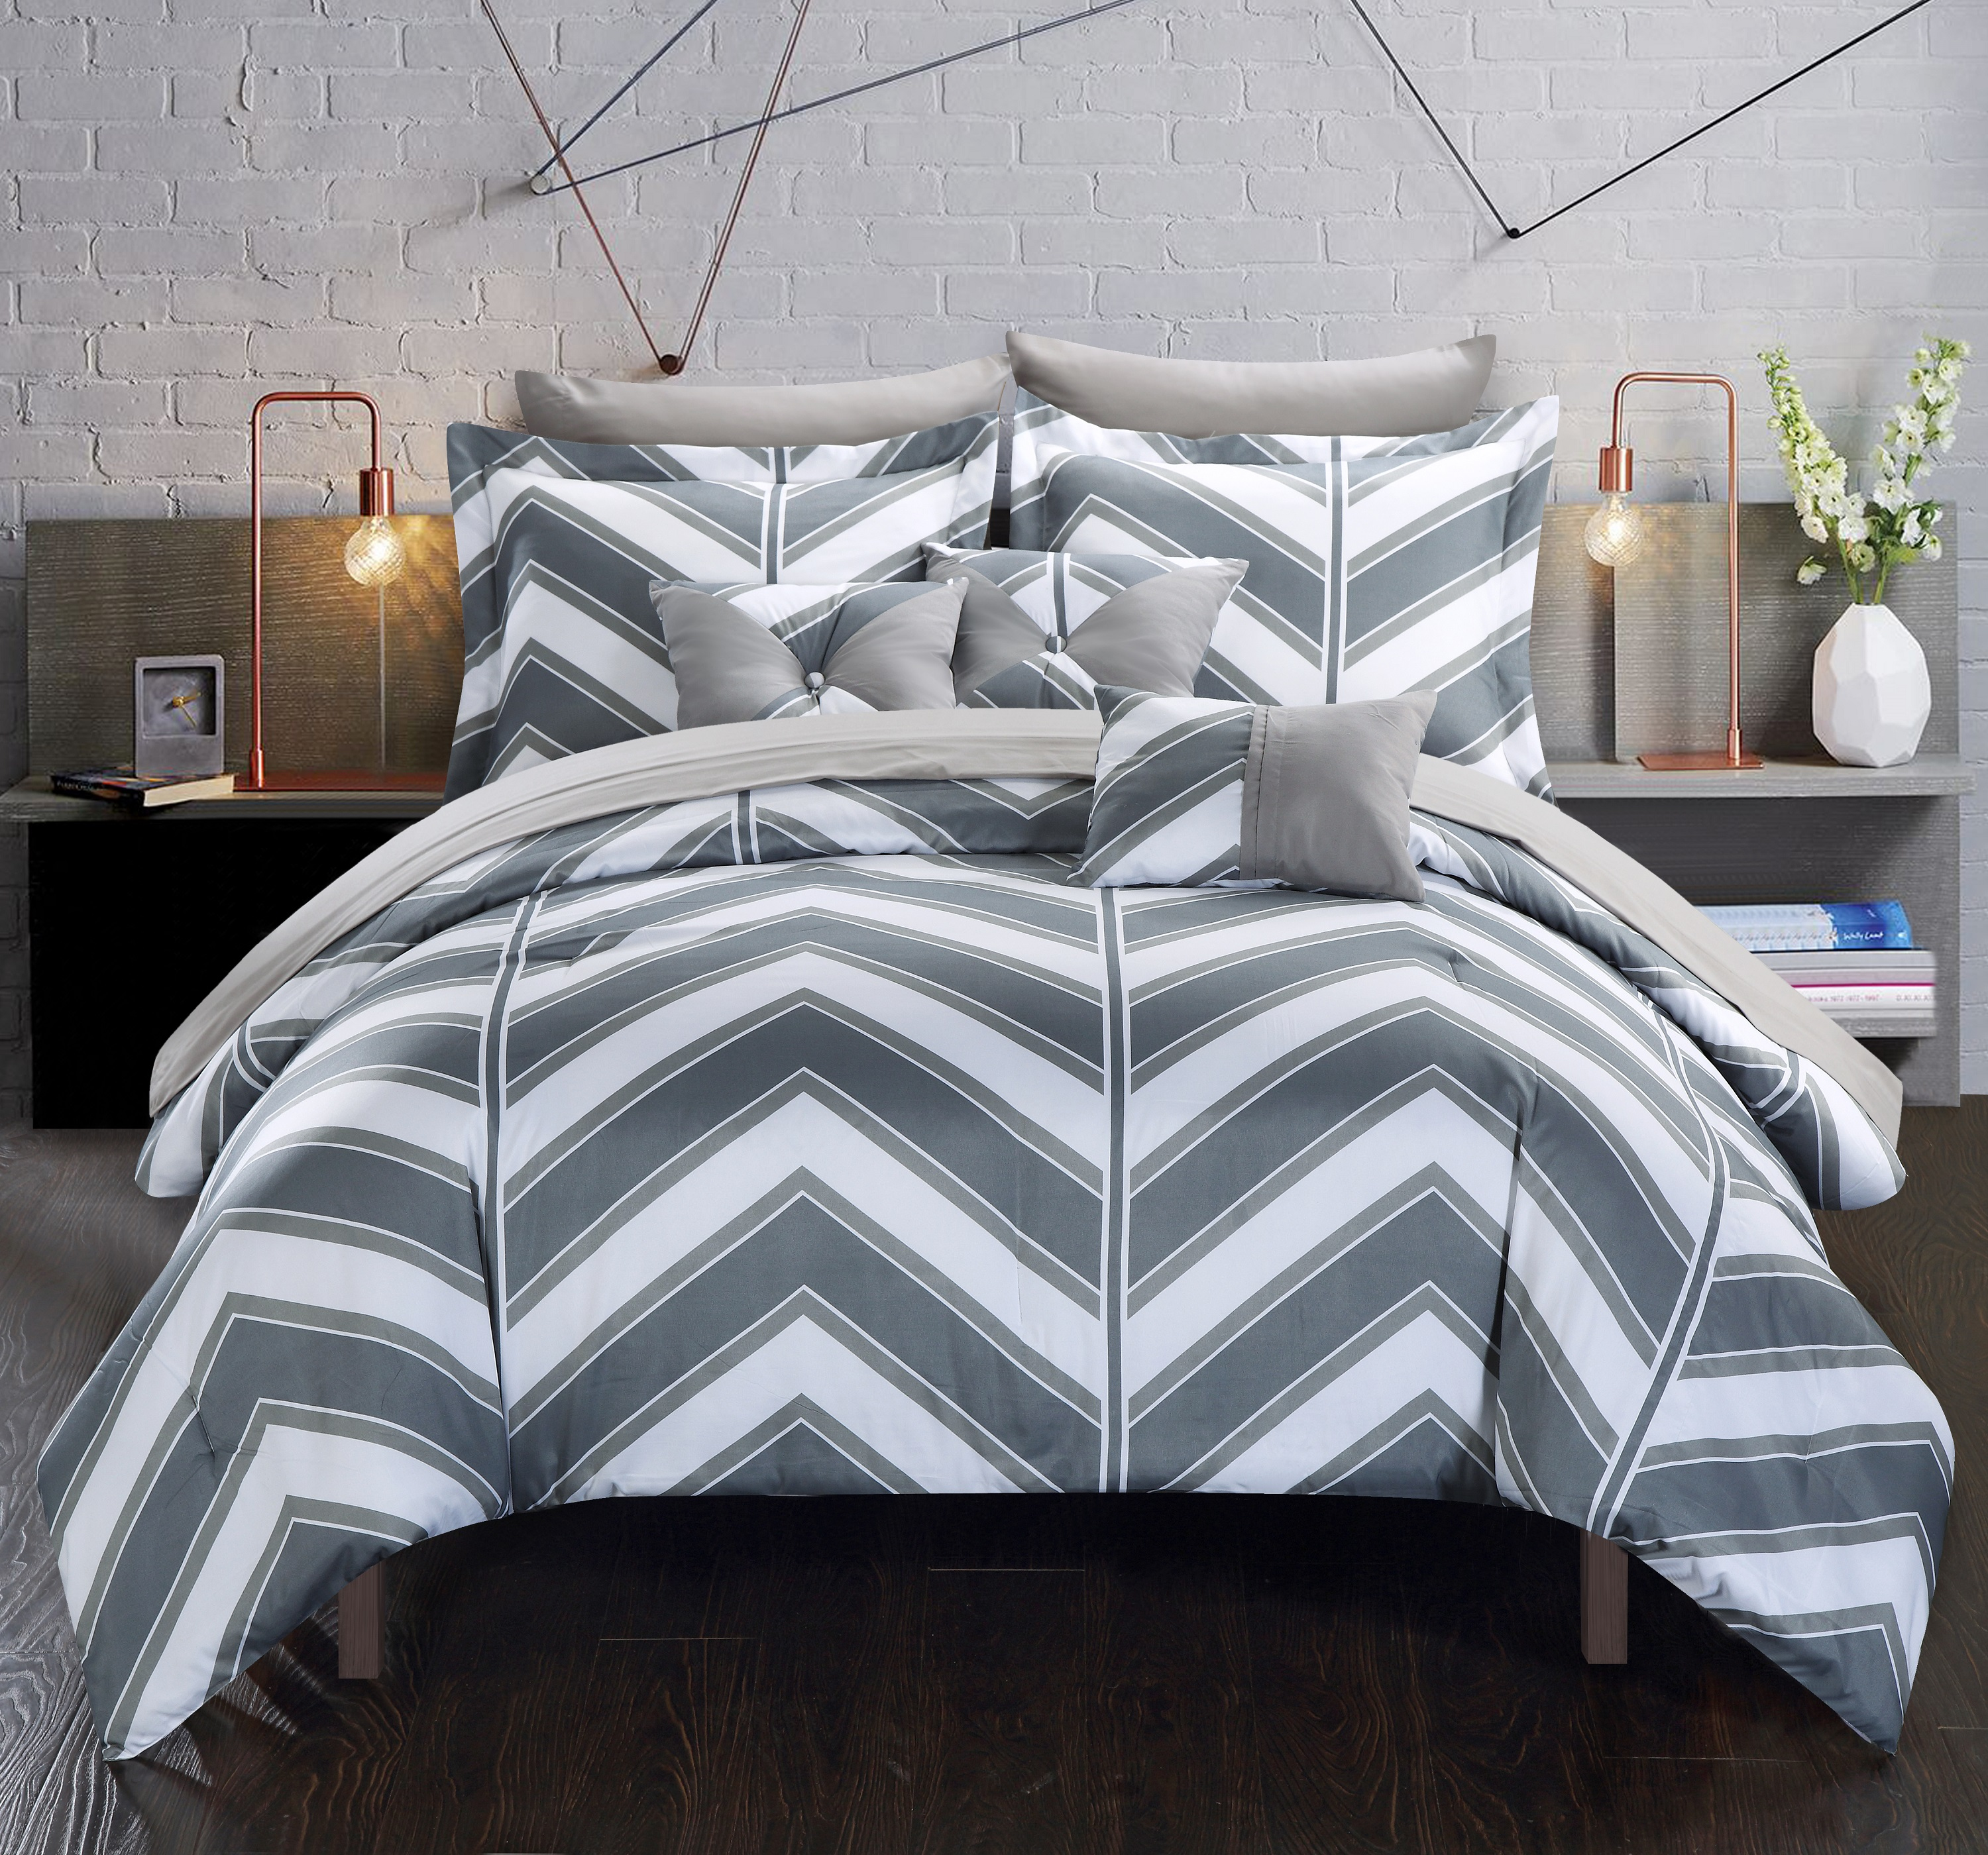 Chic Home 10 Piece Roxy Reversible Bed In a Bag Comforter Set Queen, Grey